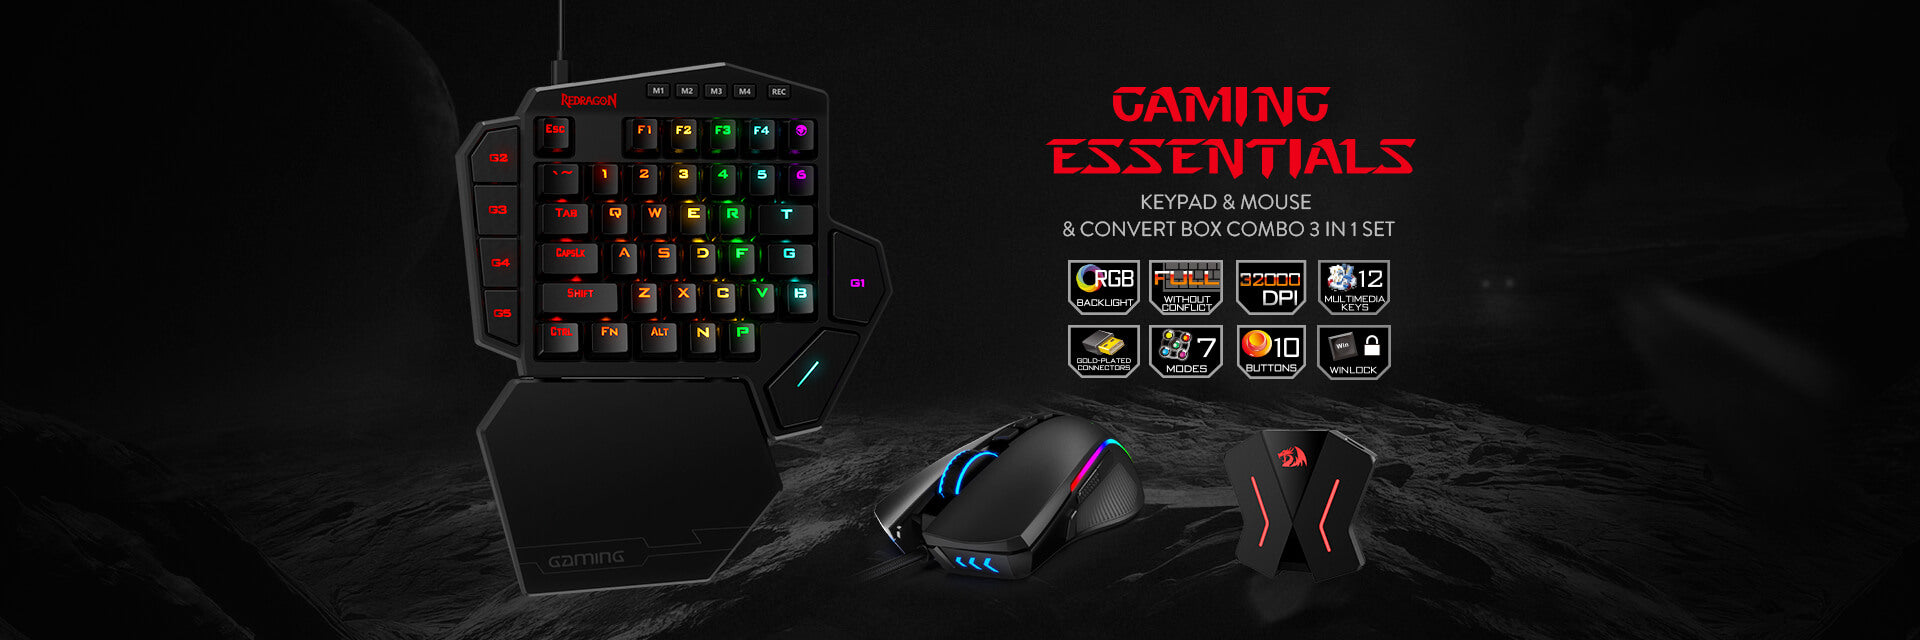 Redragon RGB K585 gaming keypad, M721 RGB gaming mouse and a GA200 converter